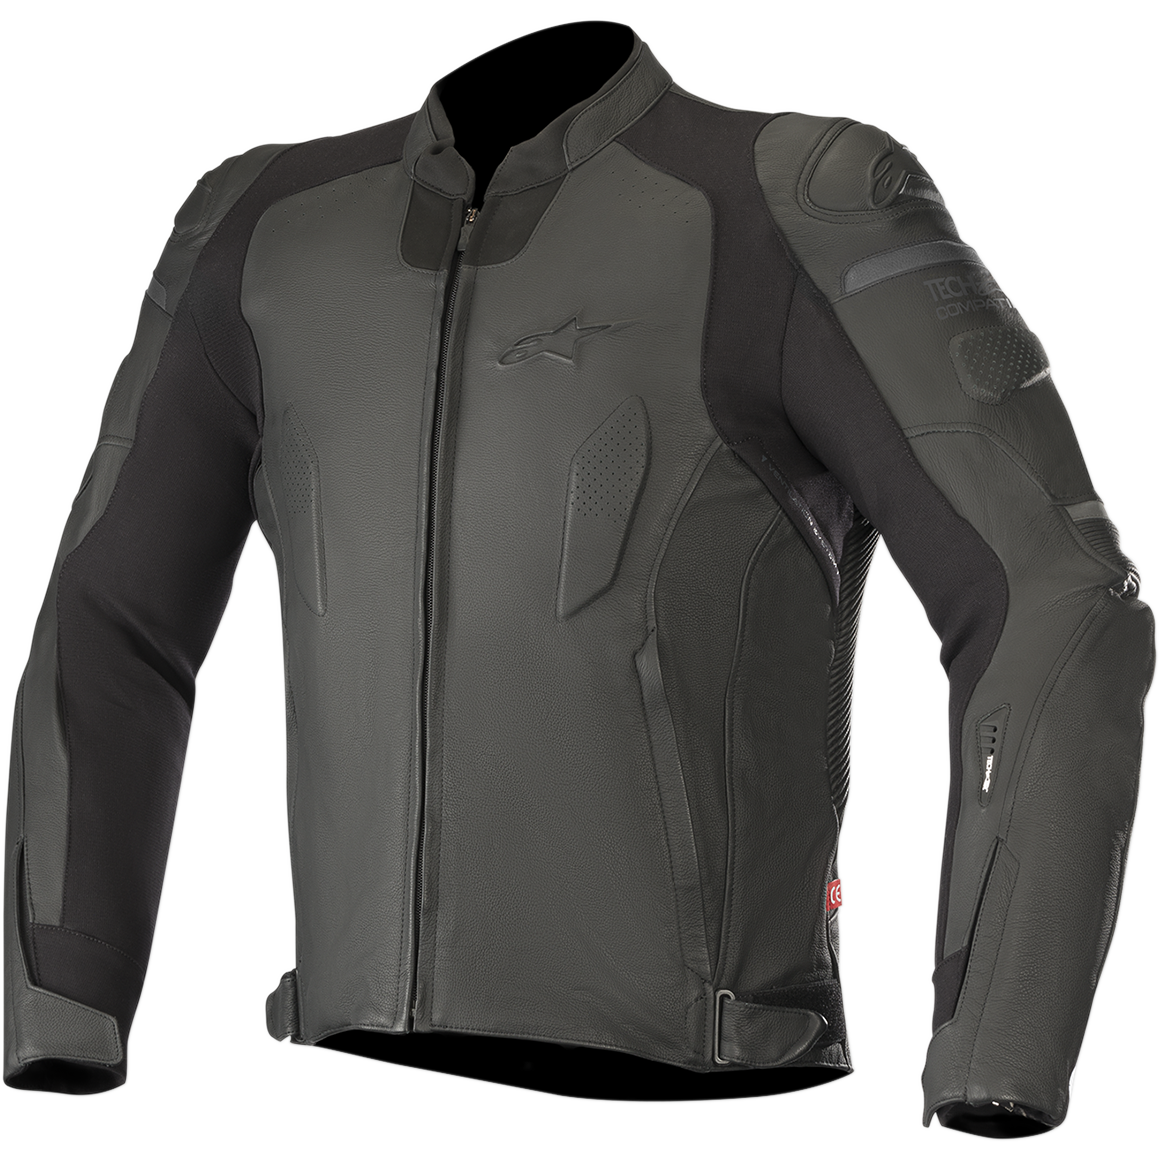 Specter Jacket Tech-Air® Compatible